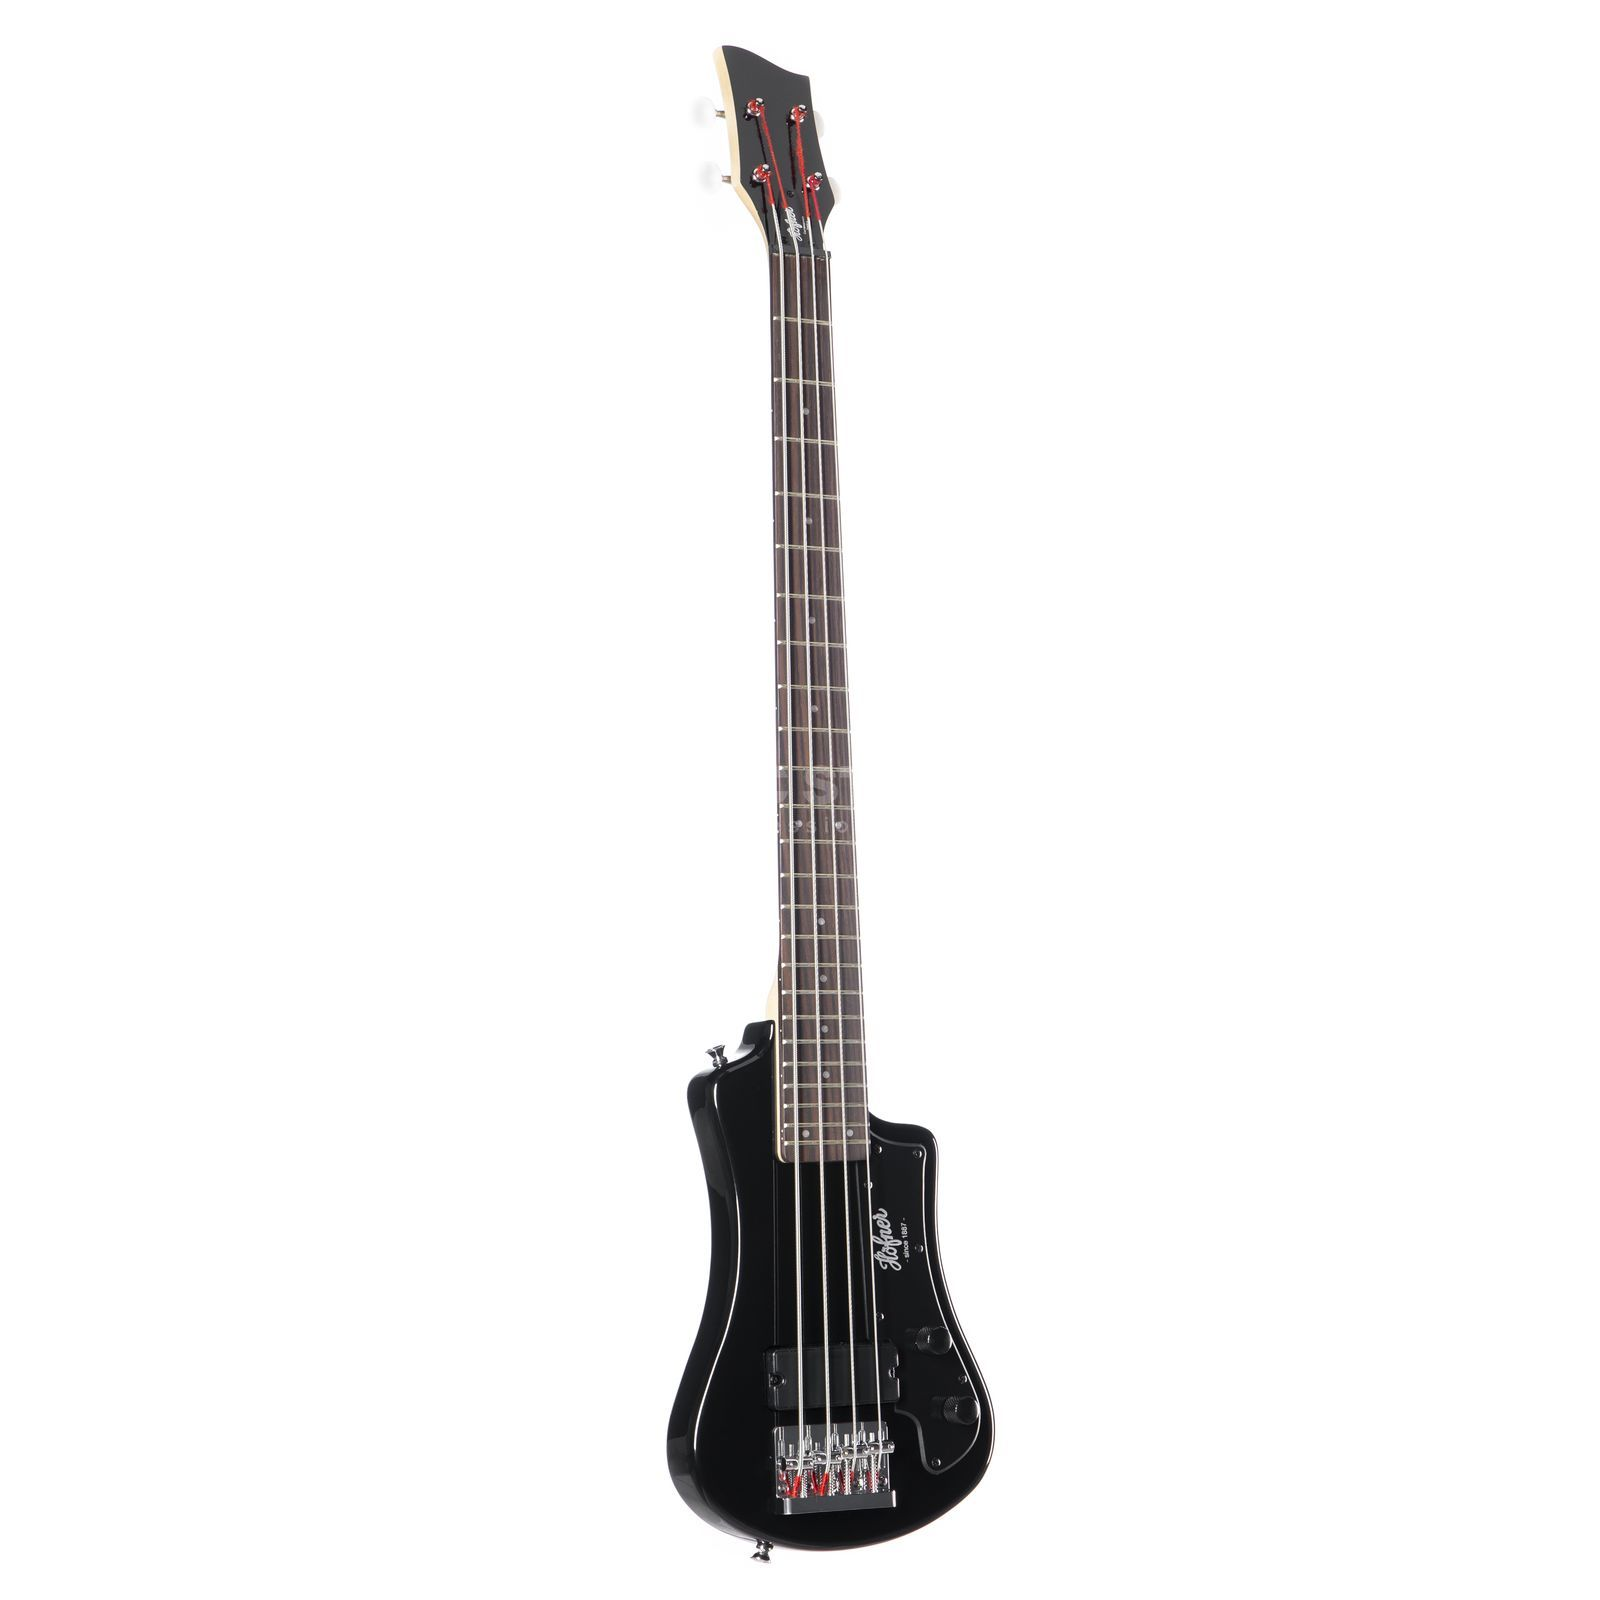 Höfner Shorty Bass CT Black HCT-SHB-BK-0 Изображение товара